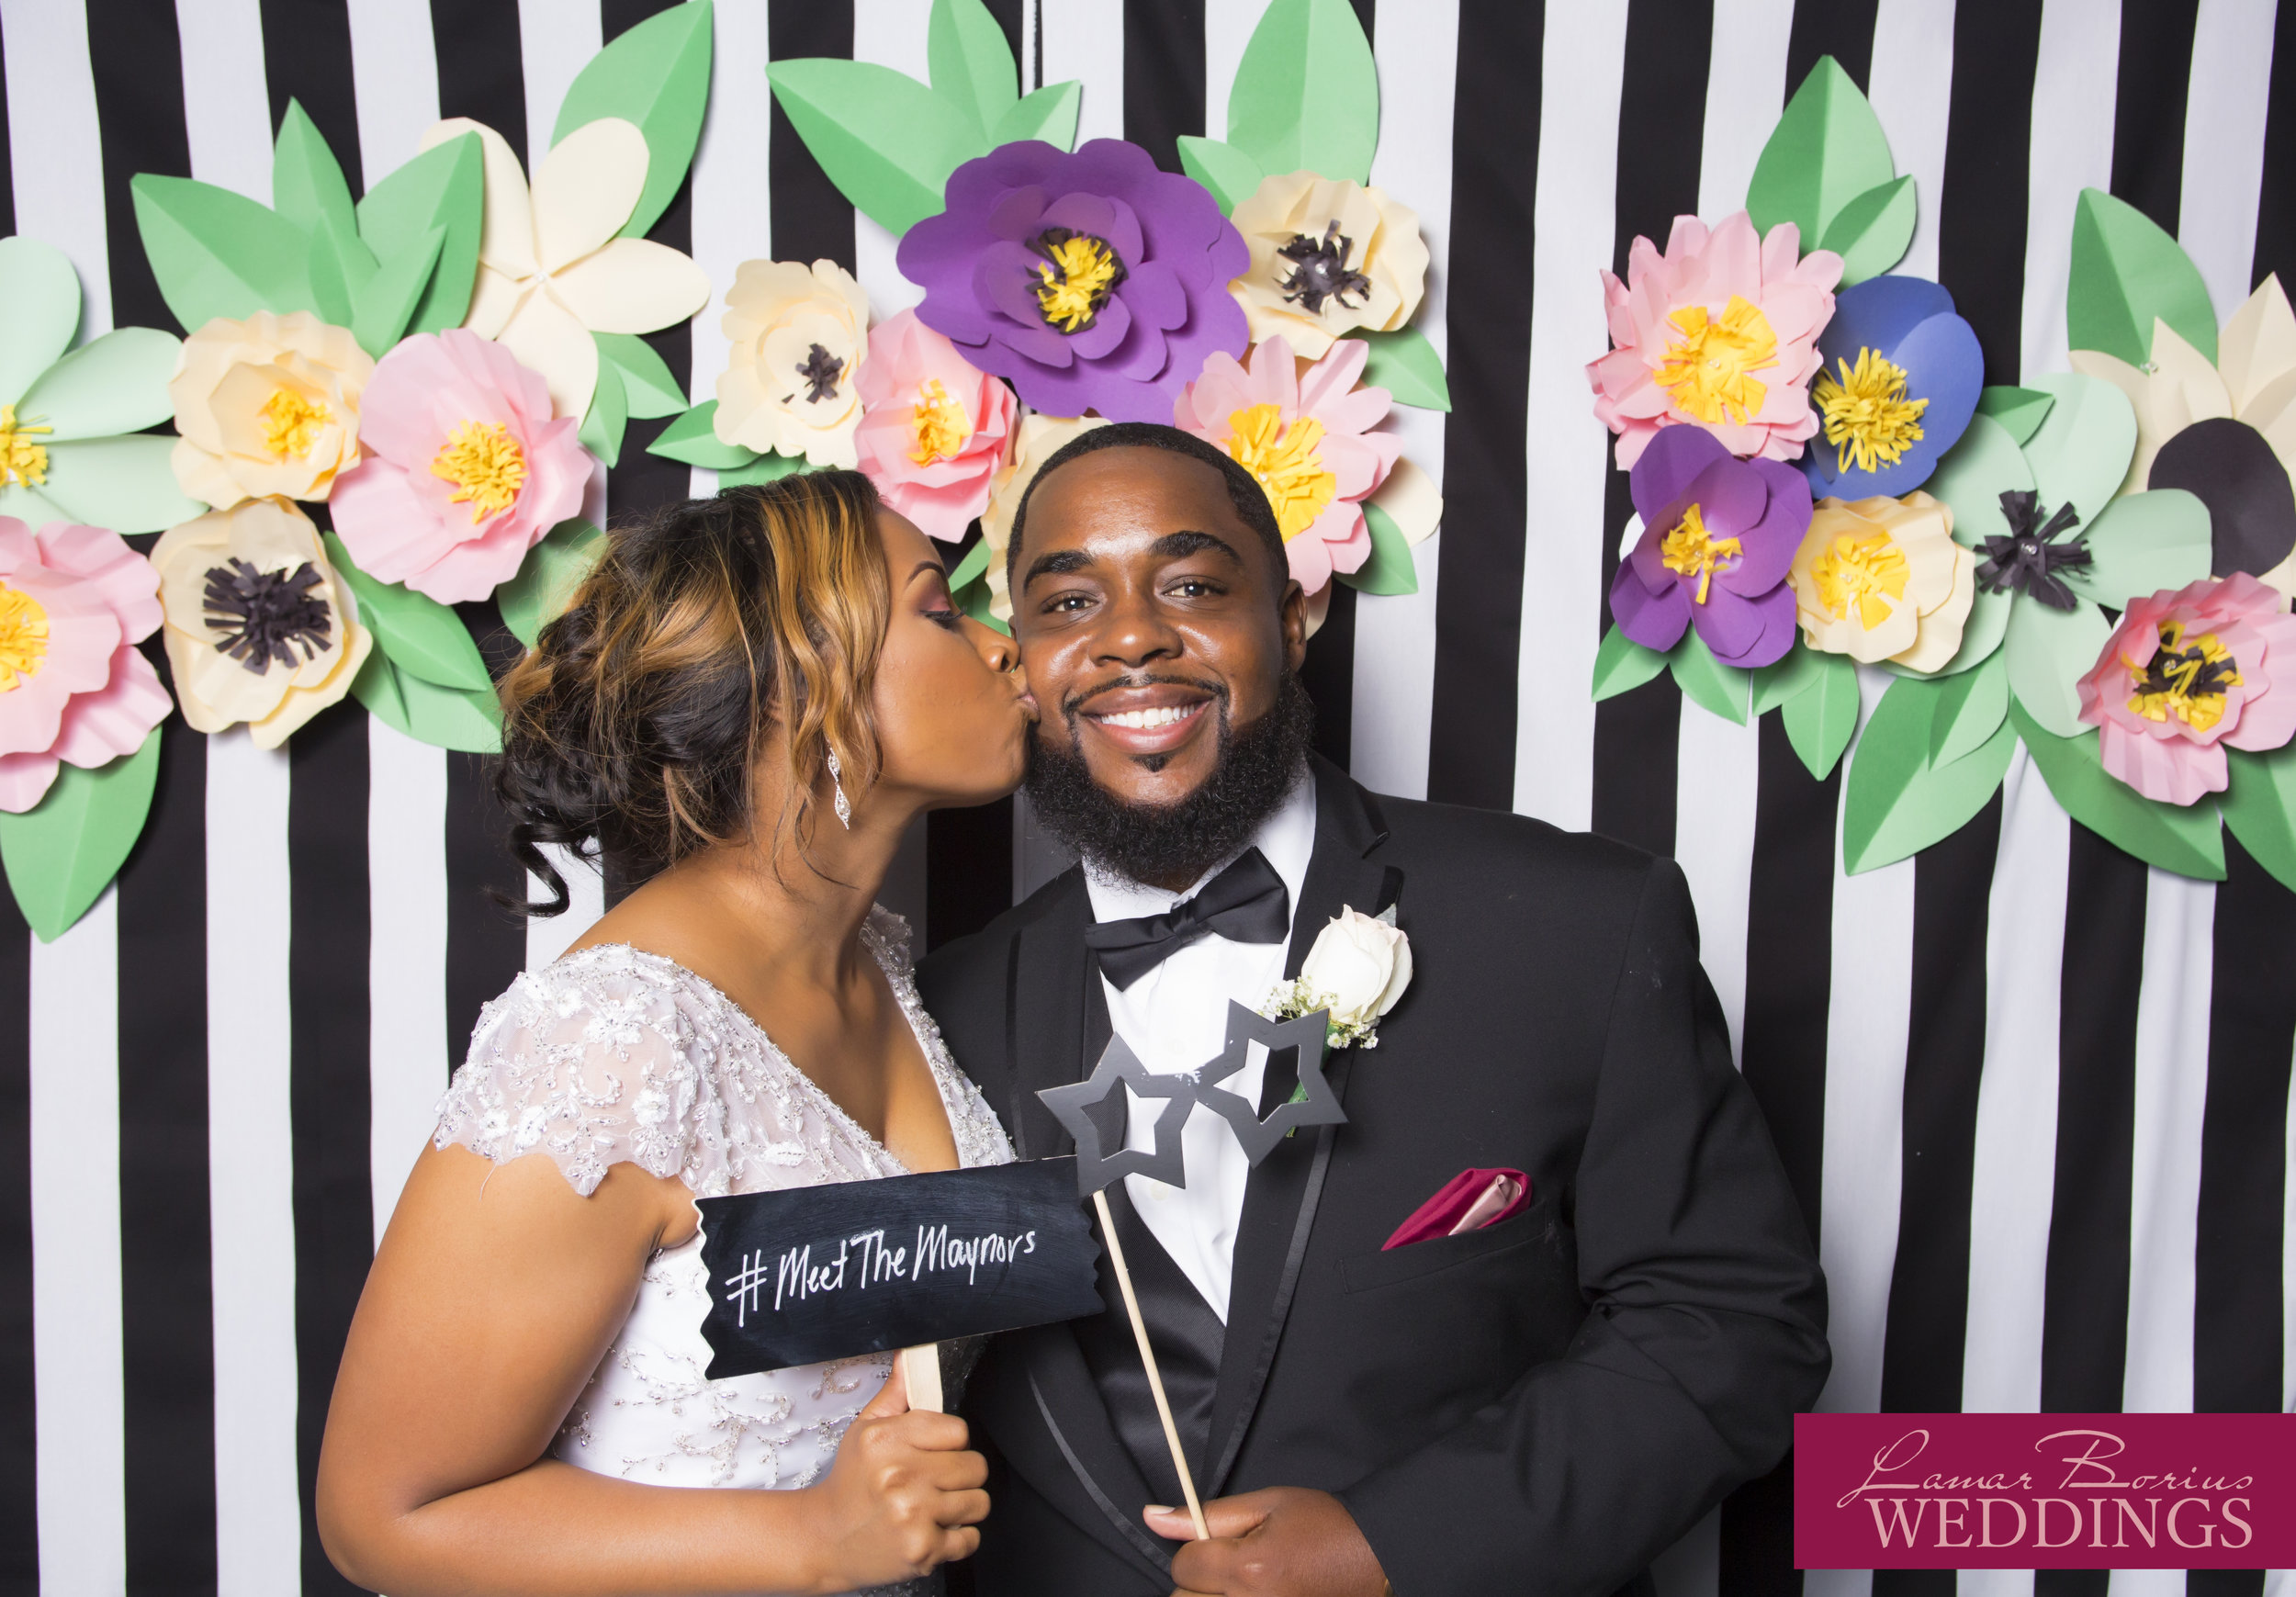 Maynor Wedding - Photo Booth